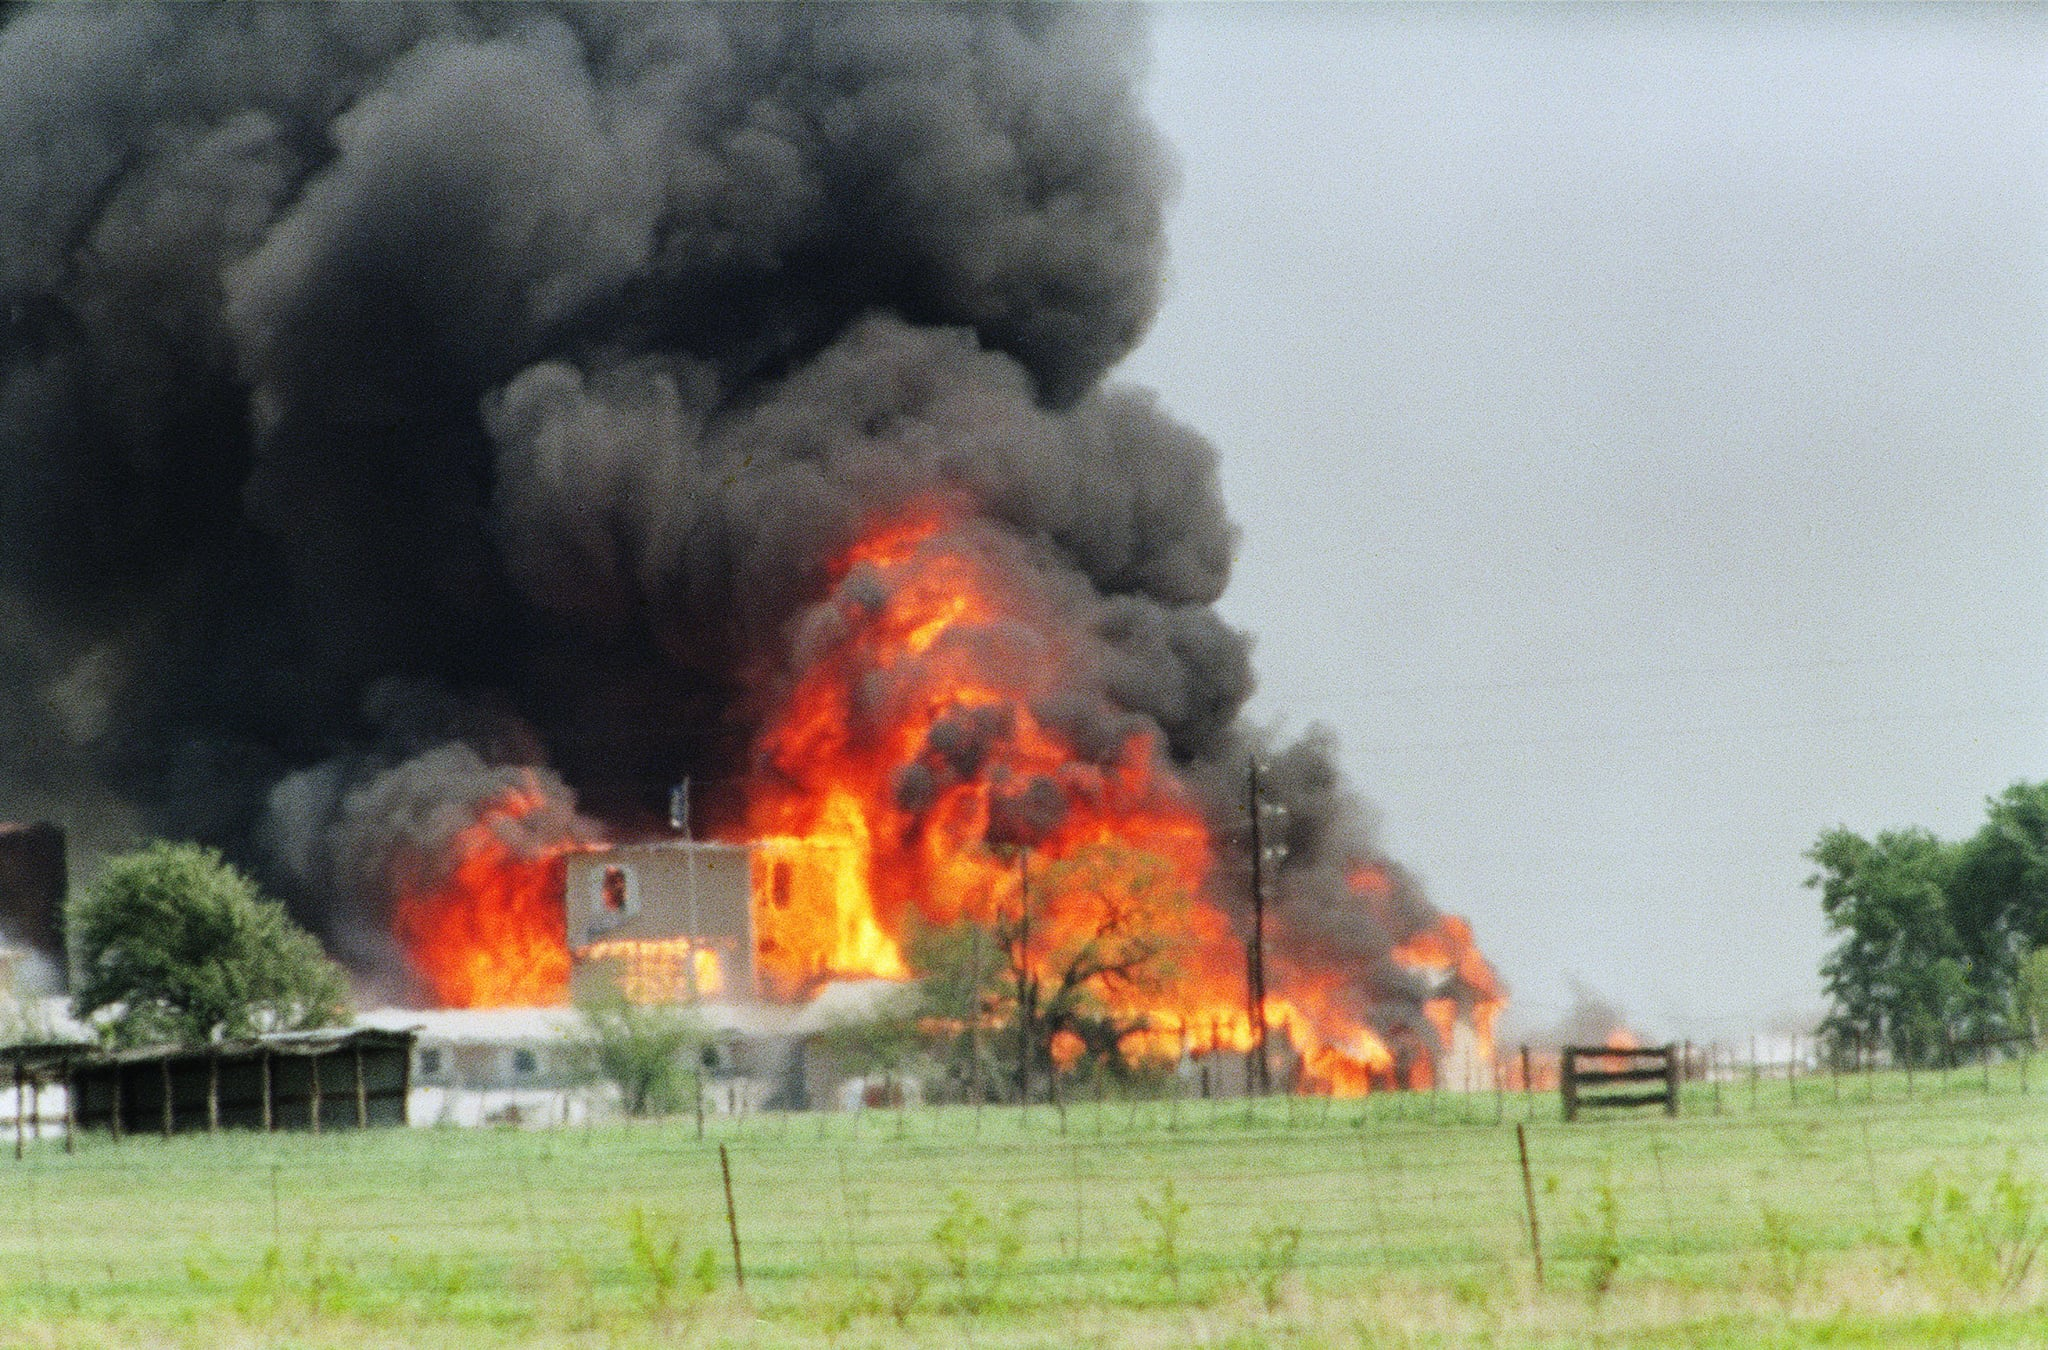 The Branch Davidian cult compound observation tower in Waco, TX is engulfed in flames after a fire burns the complex to the ground 19 April 1993. (Photo by TIM ROBERTS / AFP) (Photo by TIM ROBERTS/AFP via Getty Images)